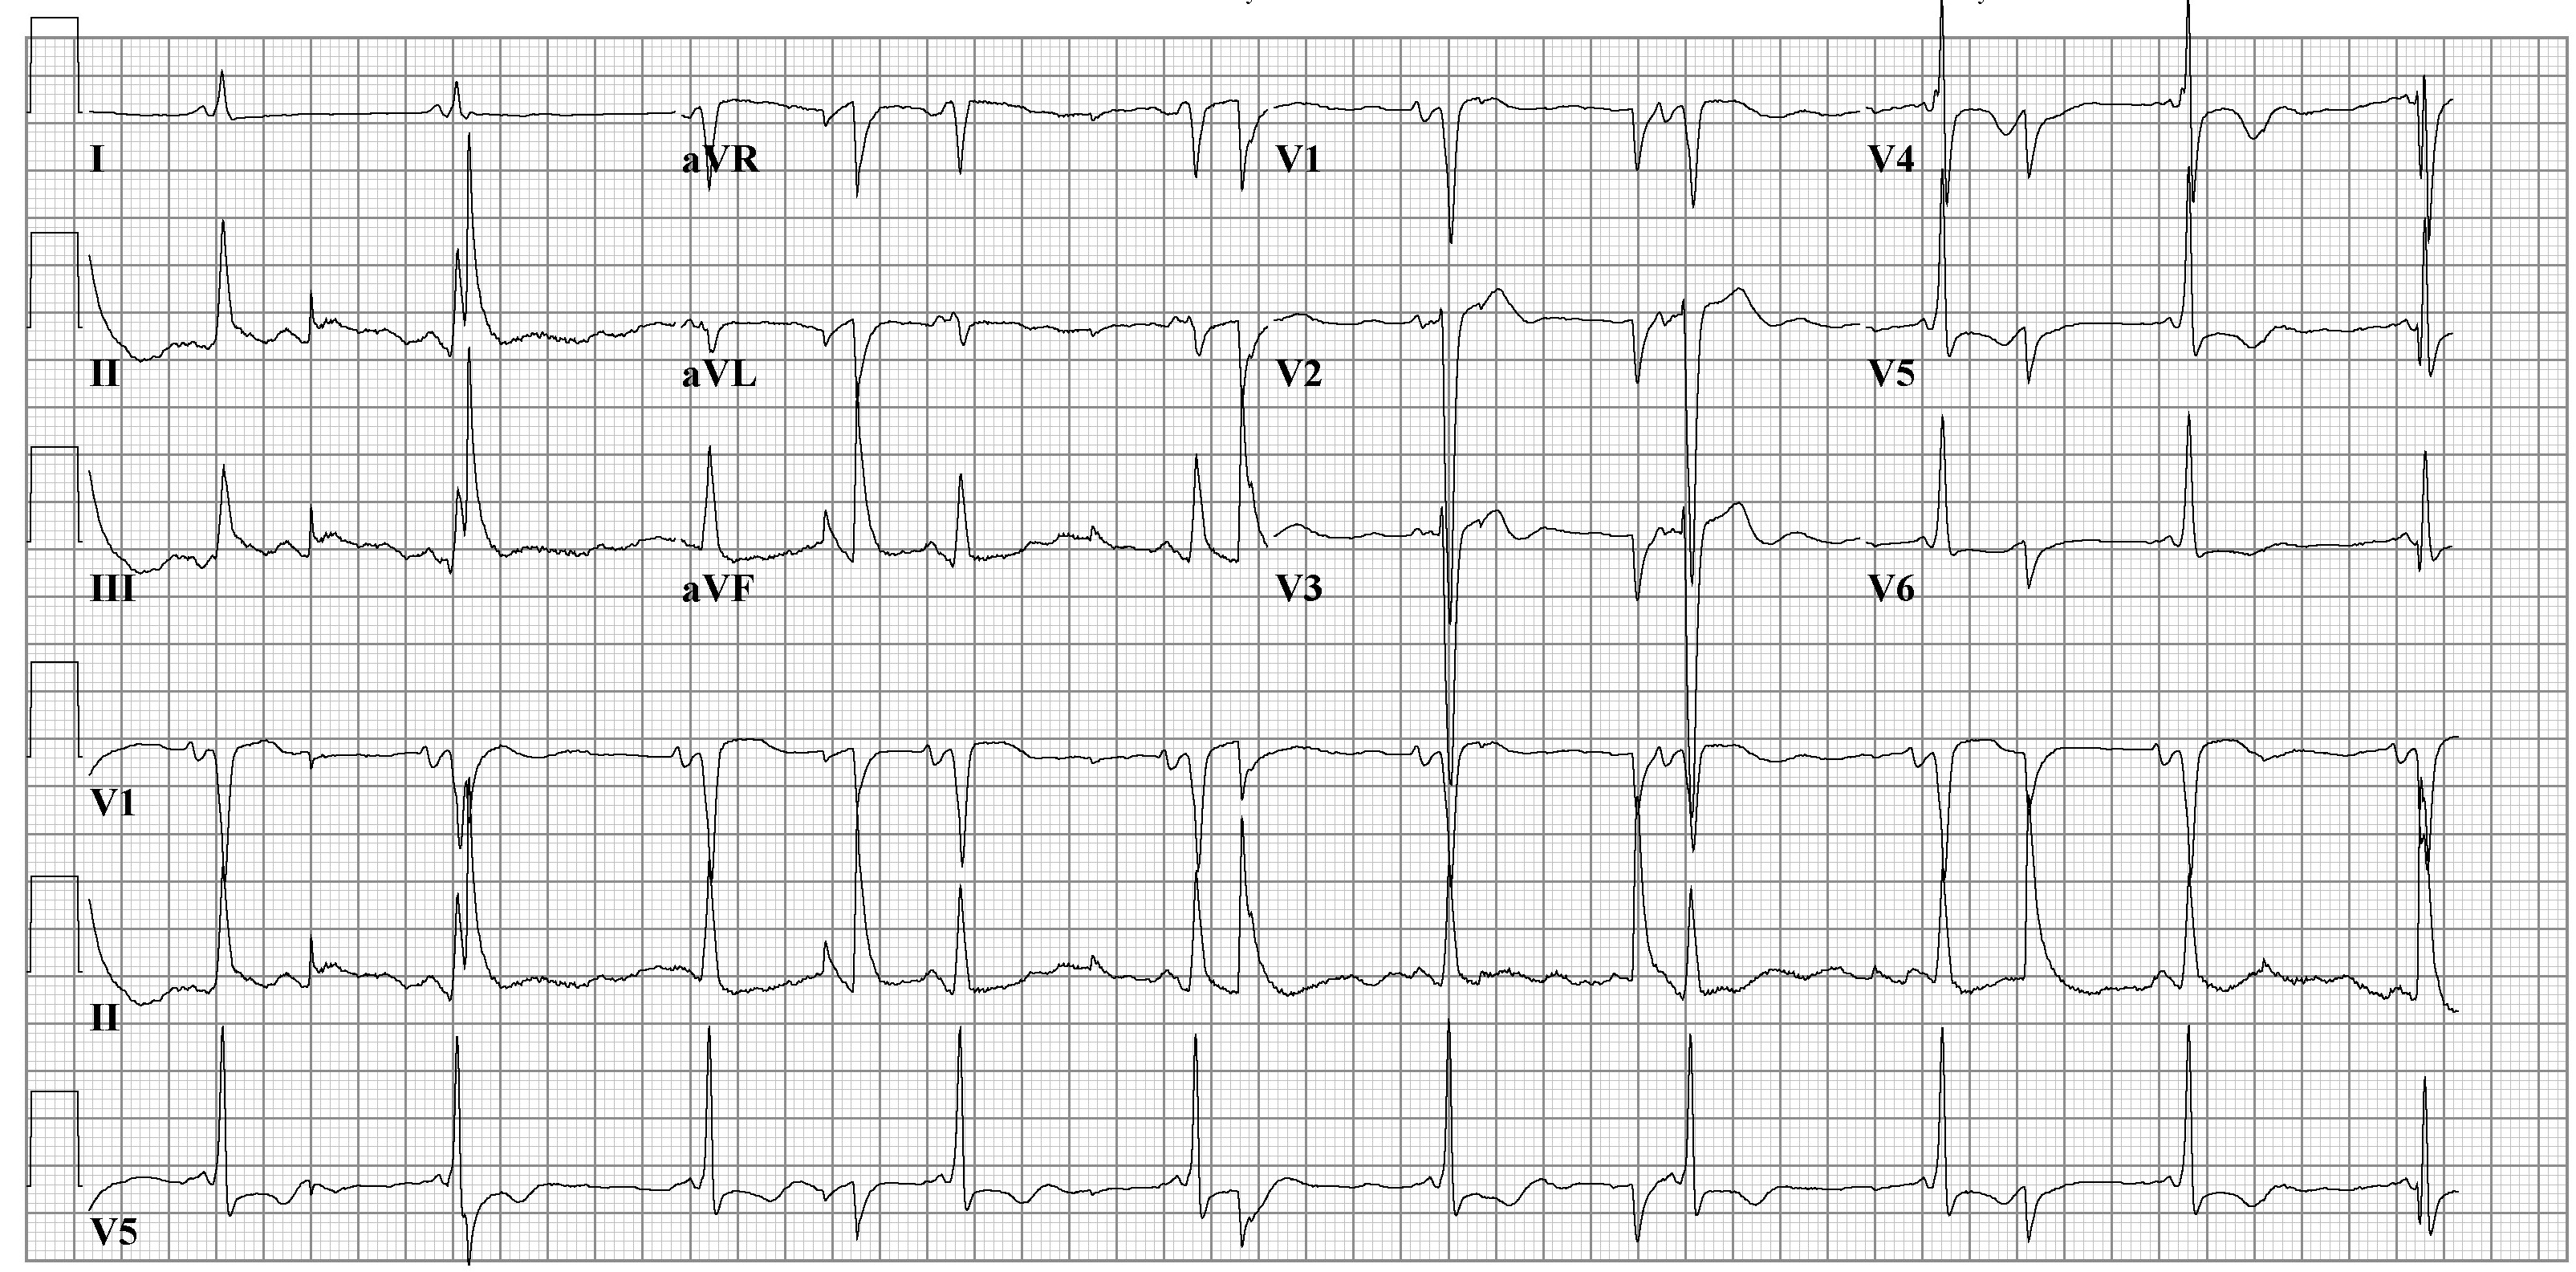 EKG artifacts - wikidoc